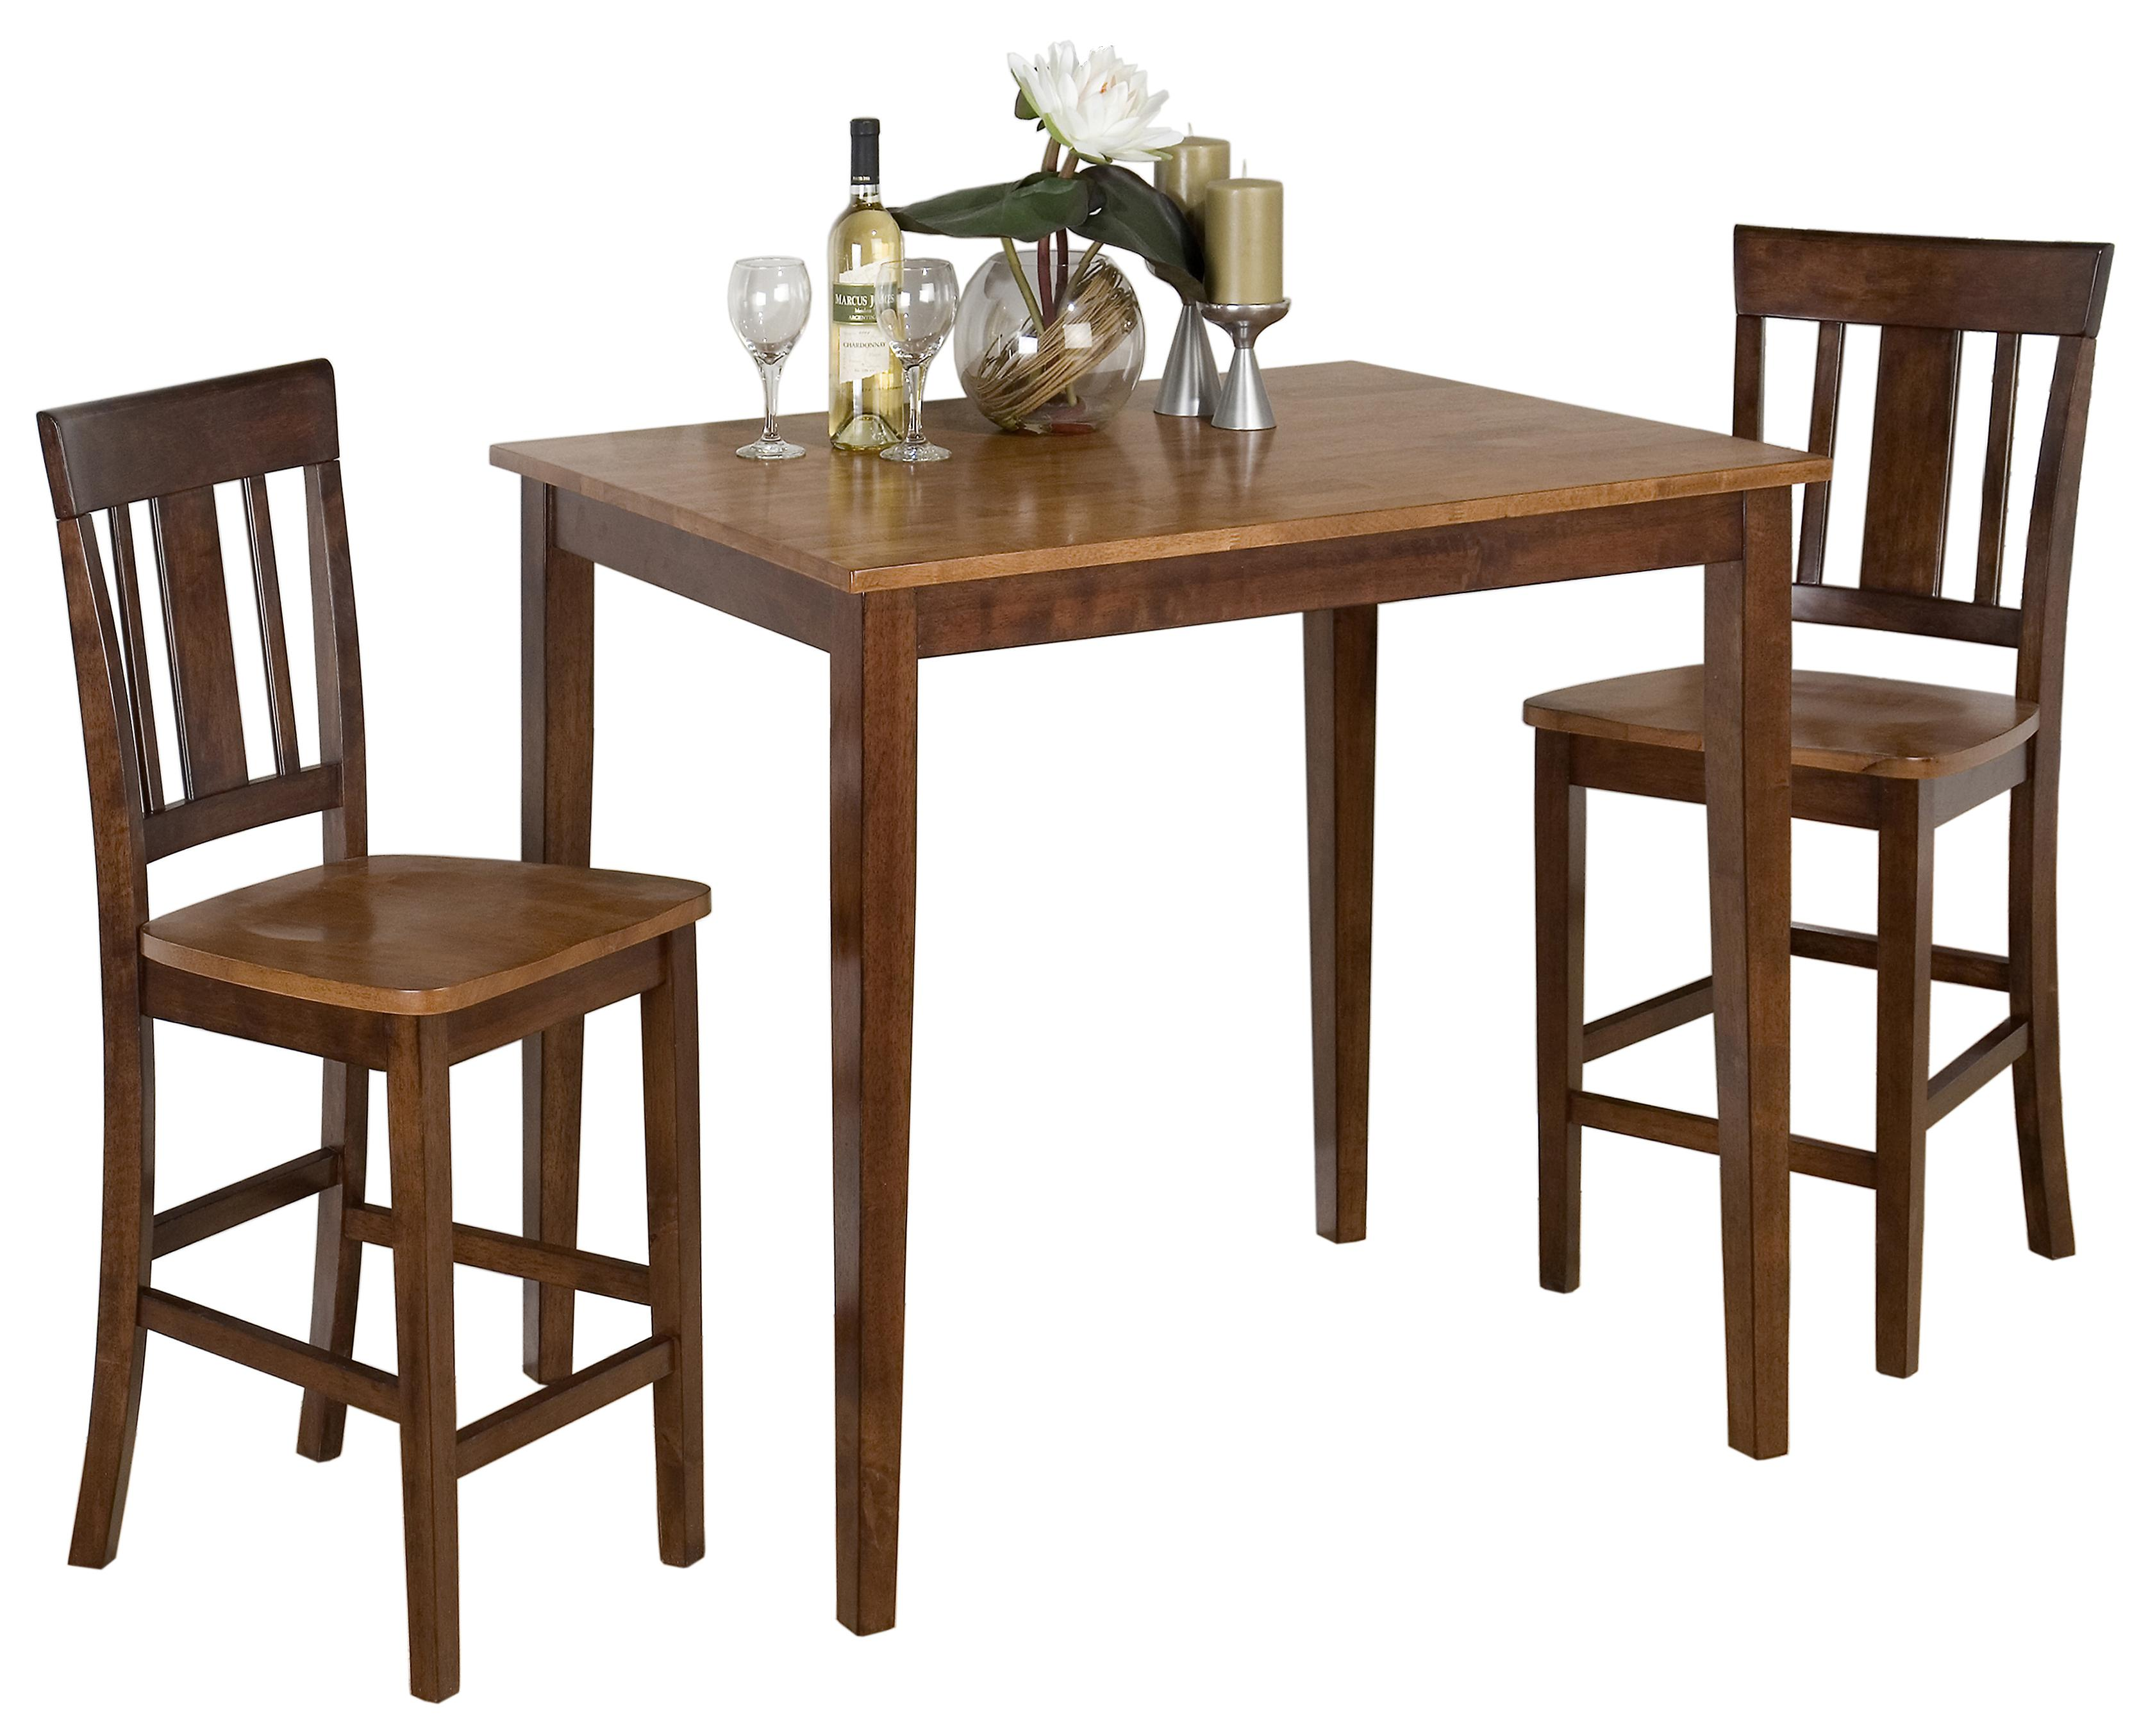 Jofran Kura Espresso and Canyon Gold 3-Piece Dining Set - Item Number: 875-30+2xBS265KD